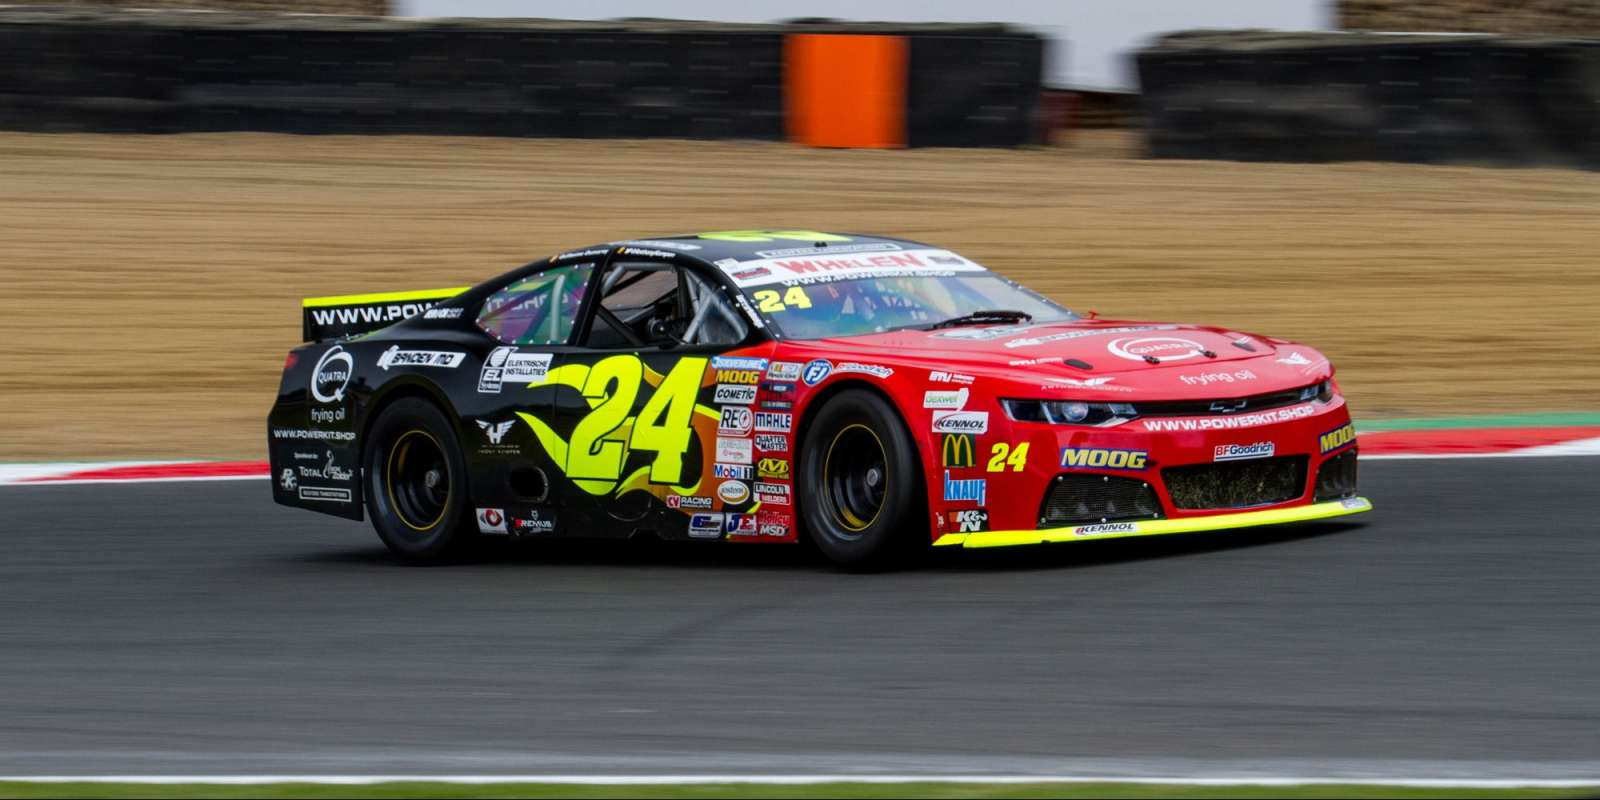 Action shots of Anthony Kumpen during the first raceday at American Speedfest 2018, Brands Hatch, UK